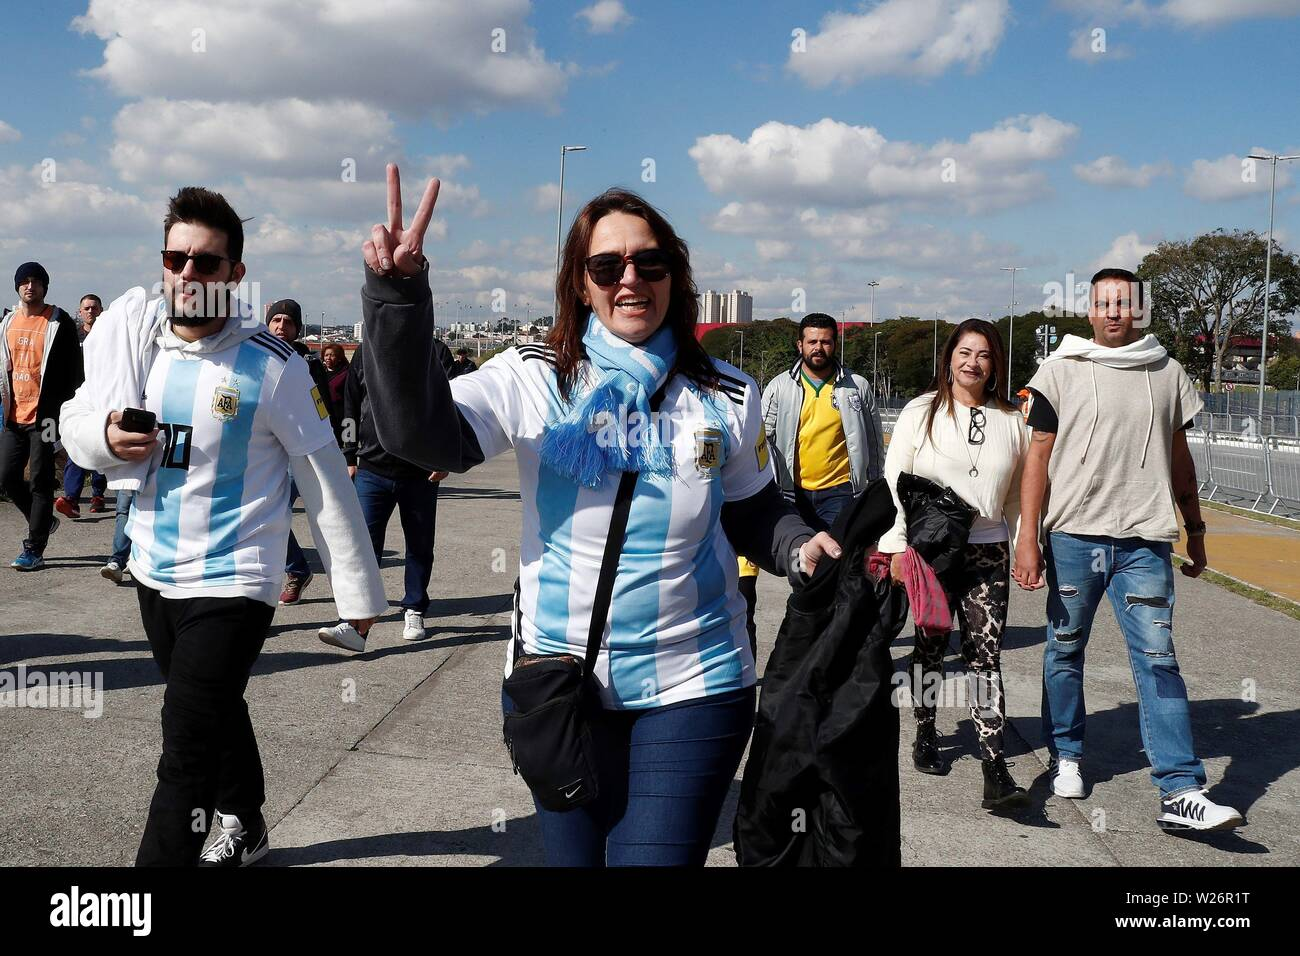 Sao Paulo, Brazil. 06th July, 2019. Sao Paulo, Brazil. 6th July 2019. Argentine fans arrive before the Copa America 2019 3rd place soccer match between Argentina and Chile, at Arena Corinthians Stadium in Sao Paulo, Brazil, 6 July 2019. Credit: Sebastiao Moreira Credit: EFE News Agency/Alamy Live News/EFE/Alamy Live News Stock Photo